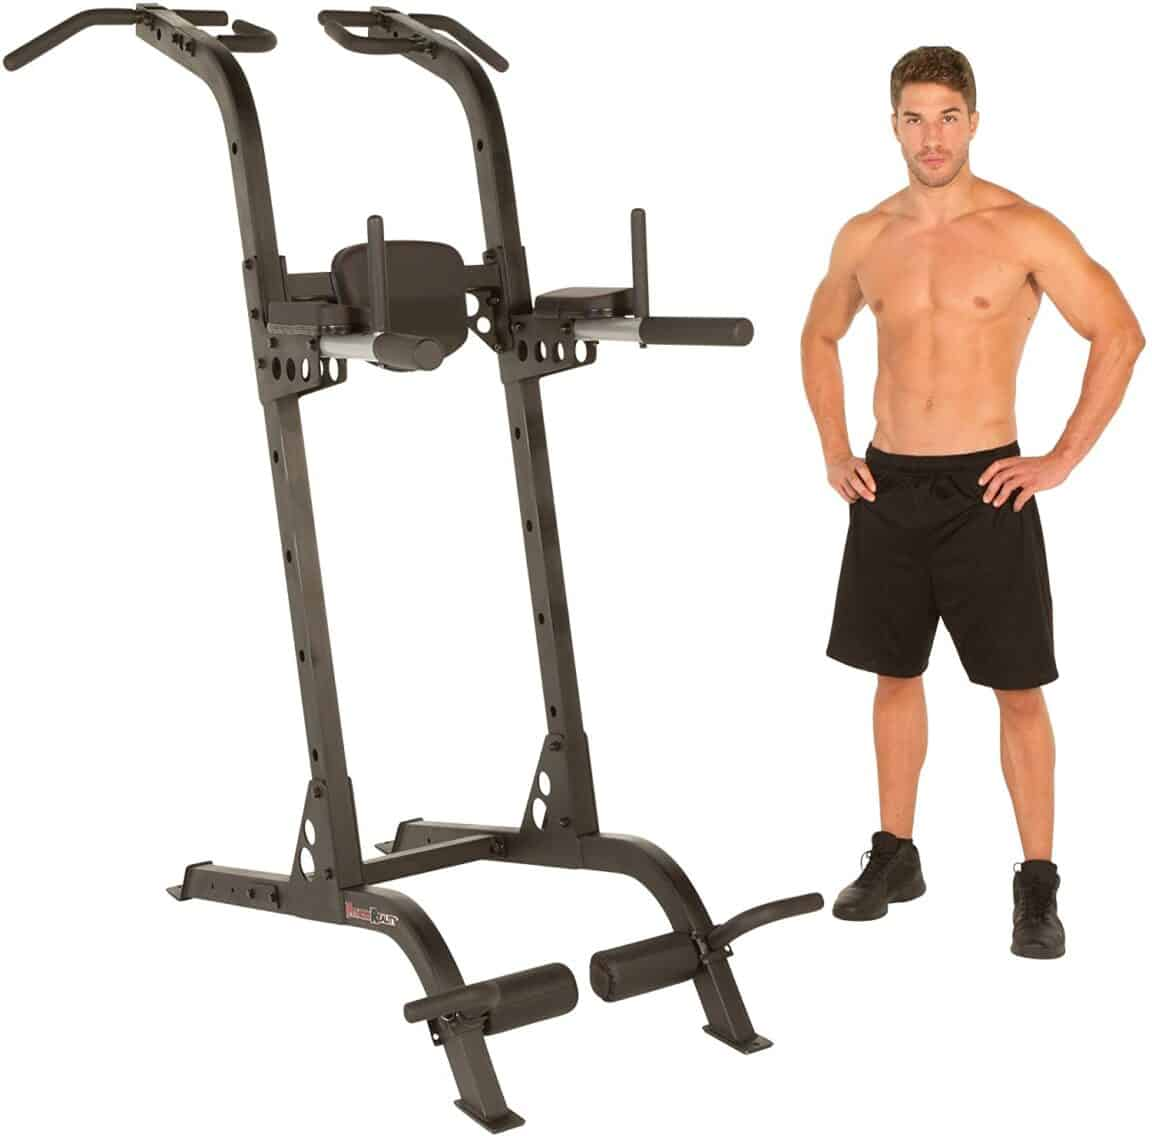 Fitness Reality X-Class power tower